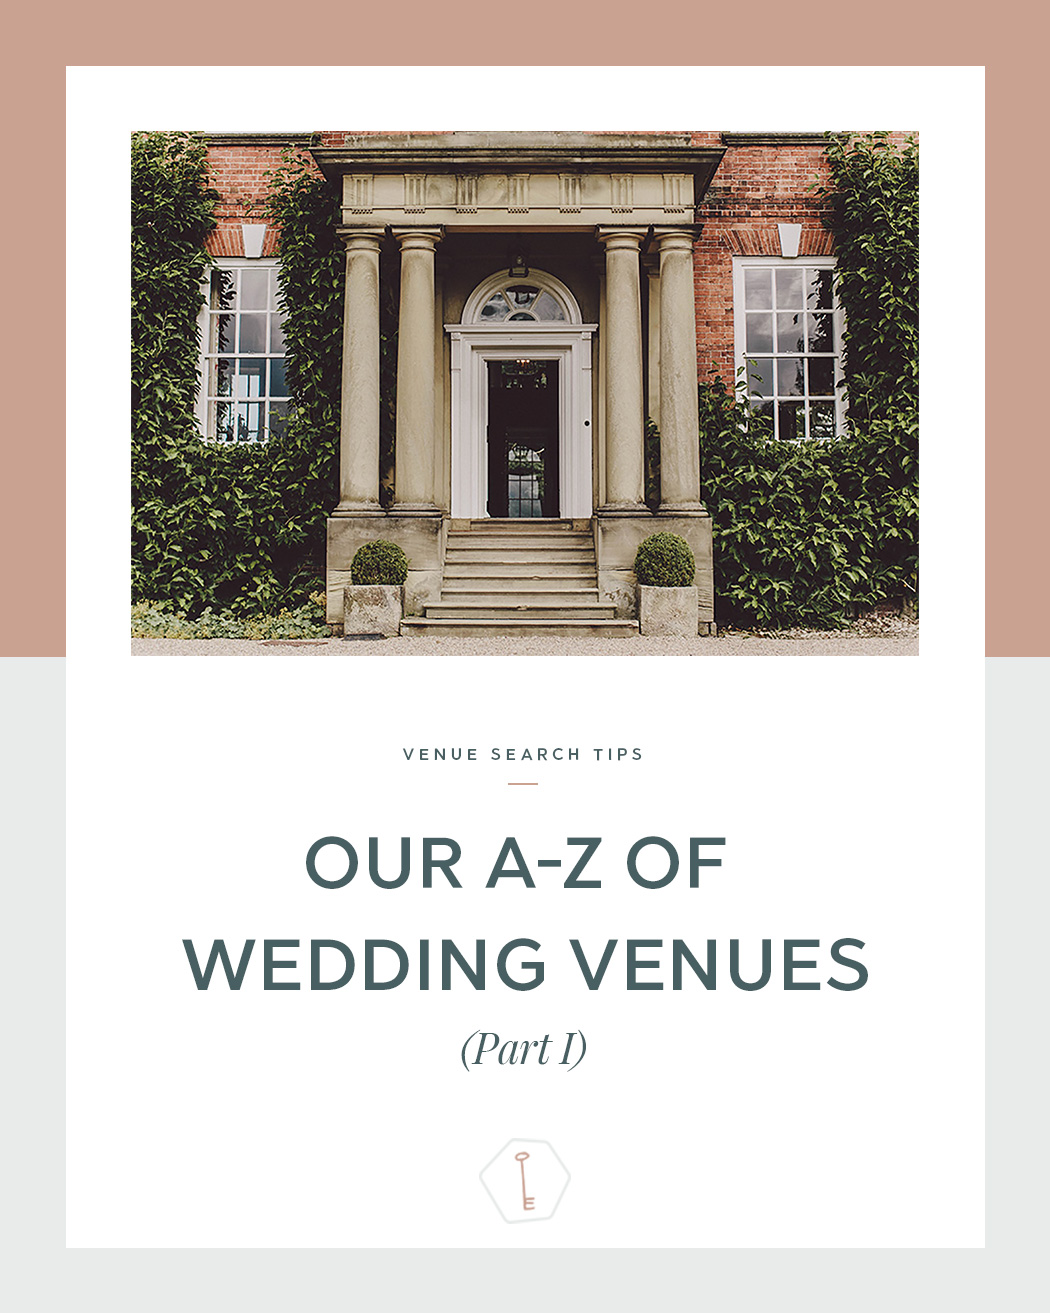 a-z-of-wedding-venues-wedding-planning-tips-poster-1